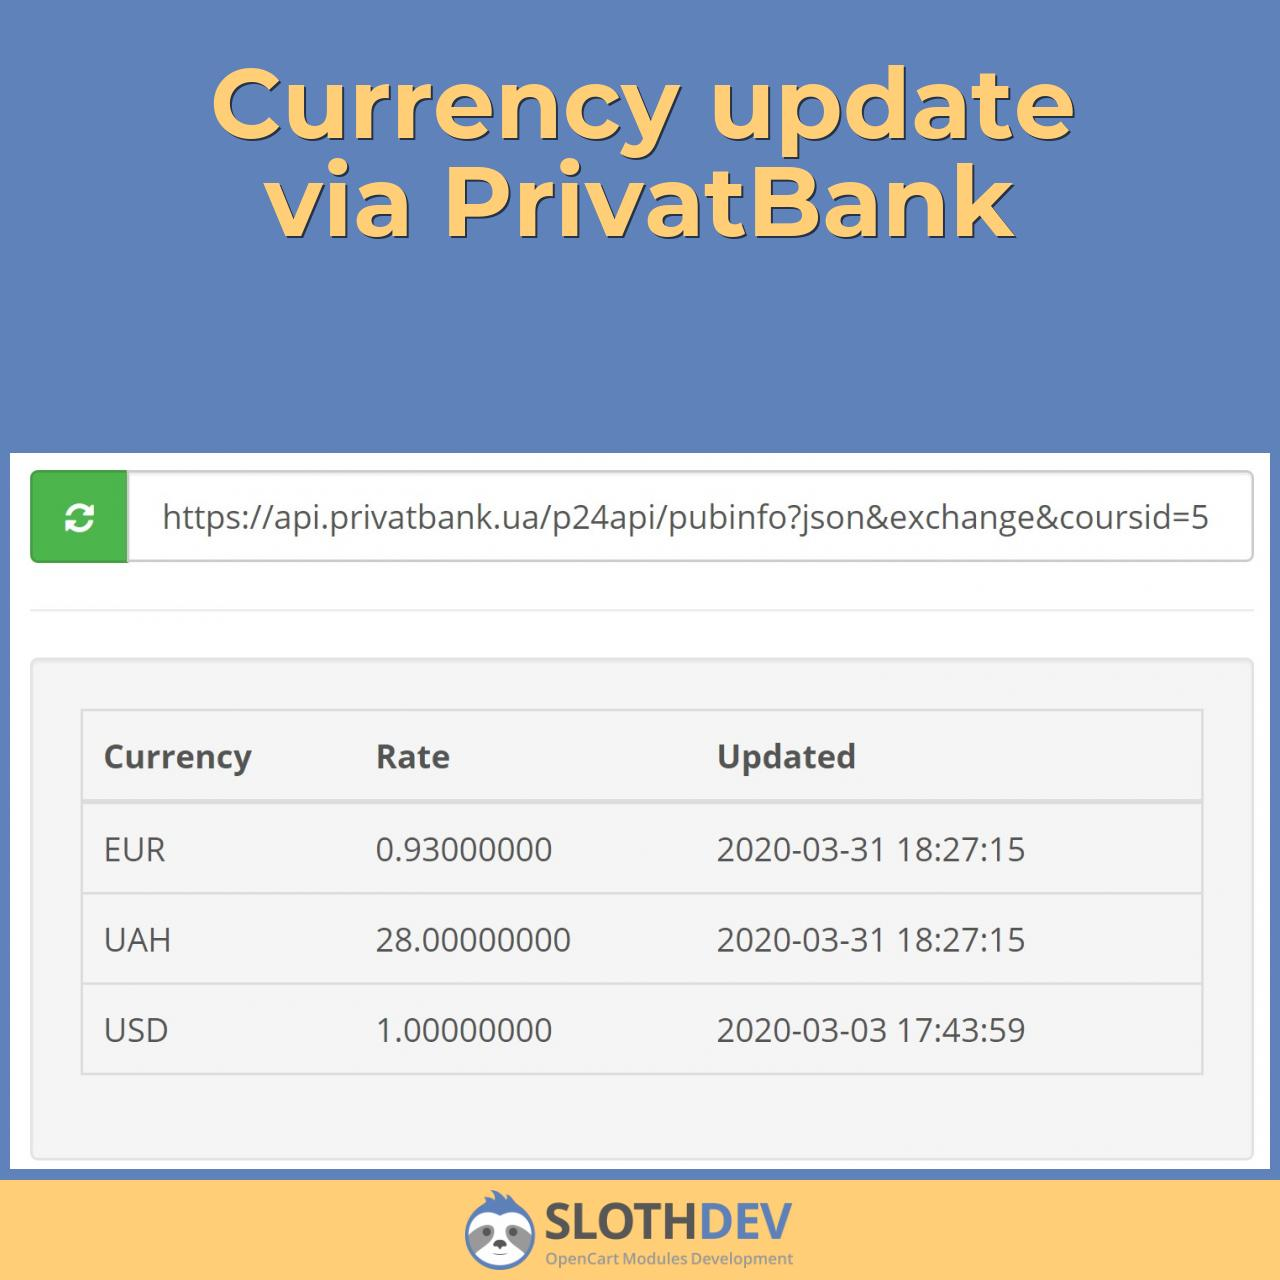 Currency update via PrivatBank